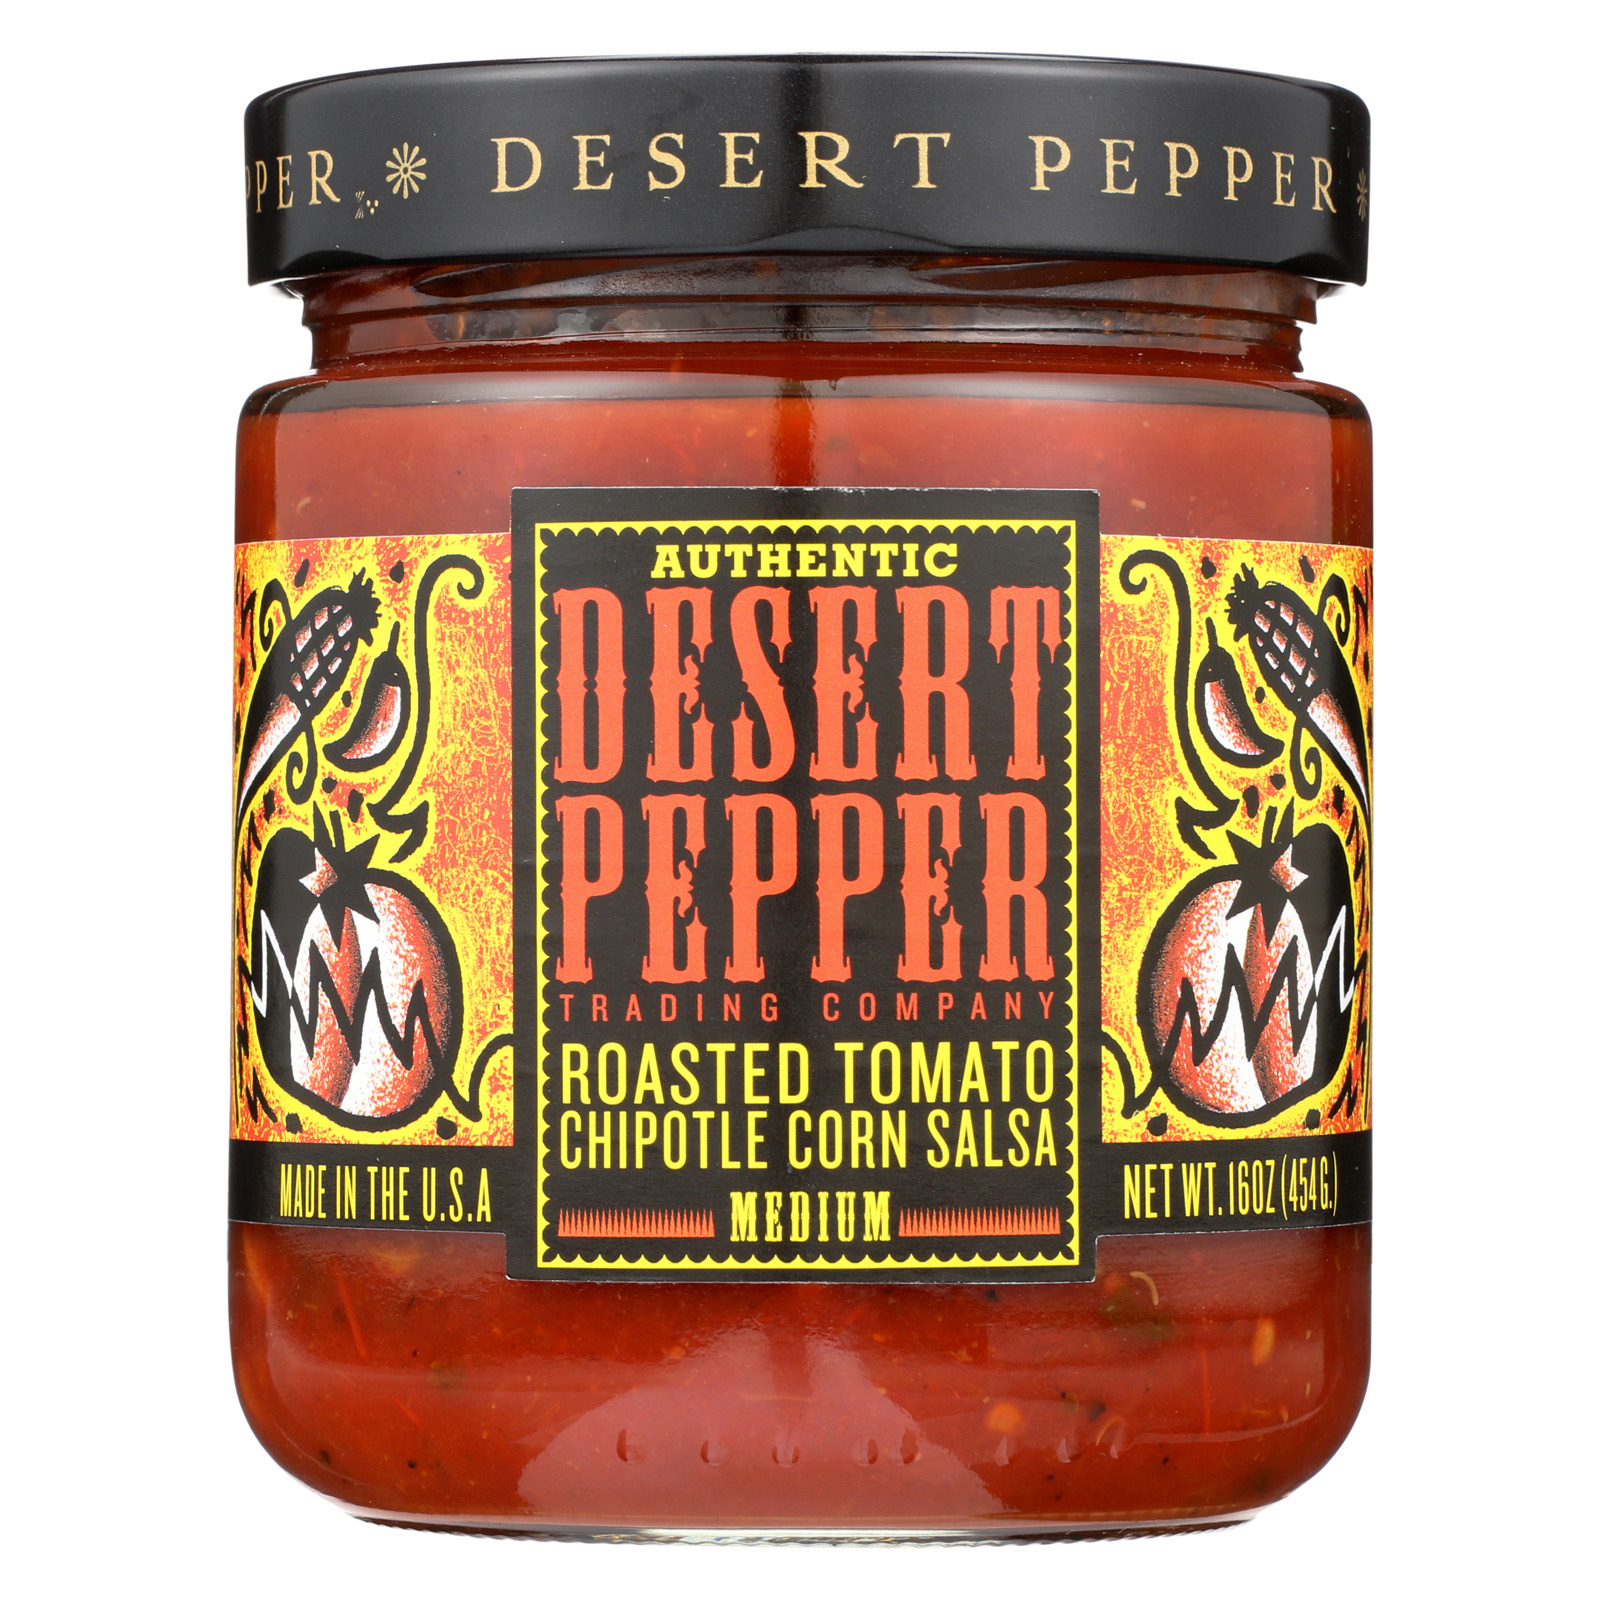 Desert Pepper Trading Medium Hot Roasted Tomato Chipotle Corn Salsa - Case of 6 - 16 oz.